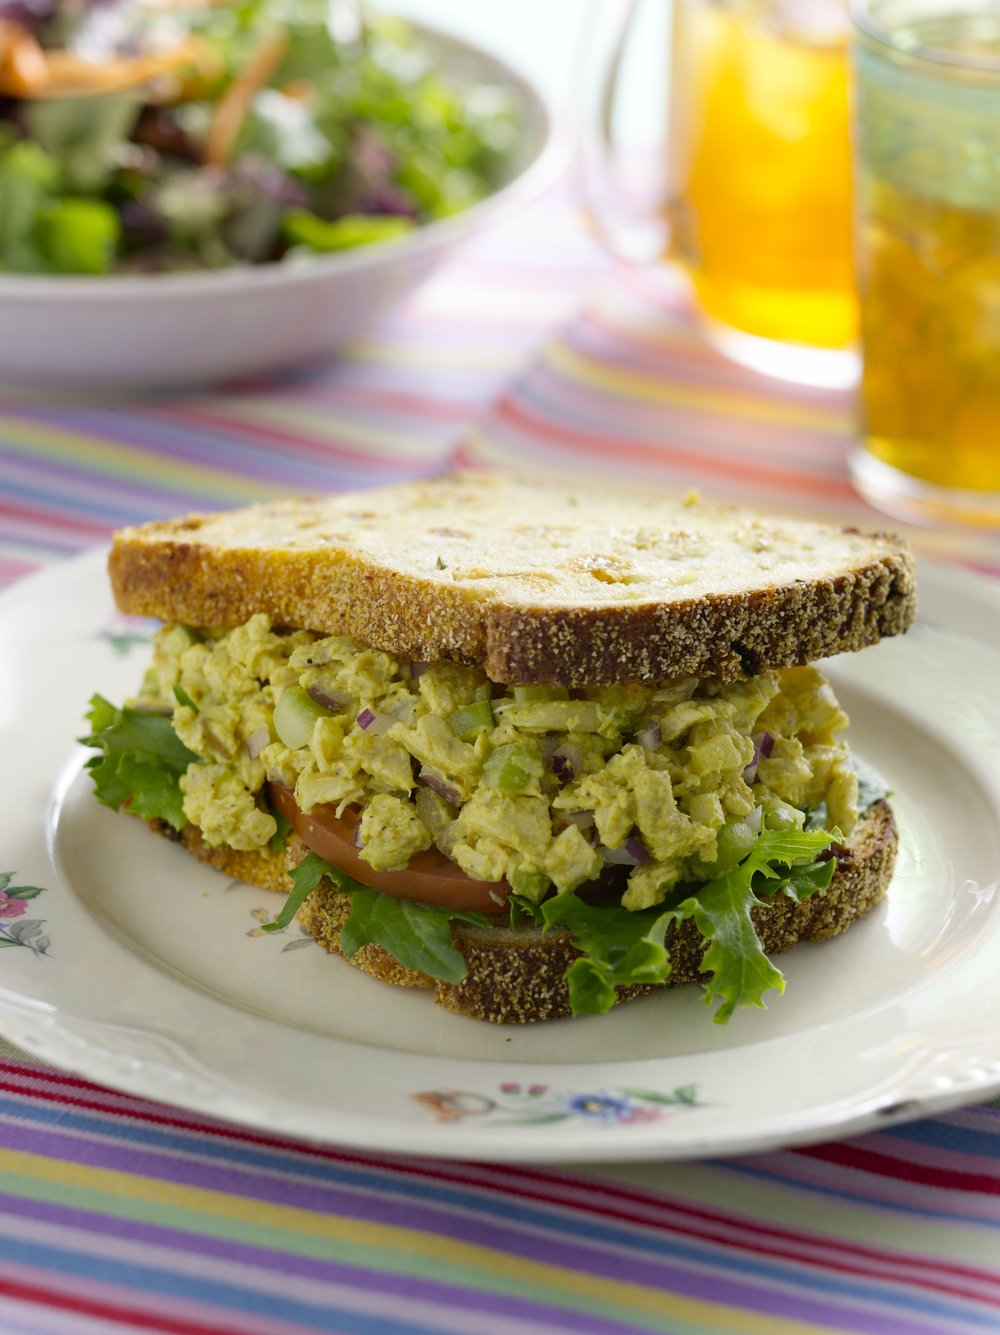 Curried Chicken Salad Sandwich, with red onion, celery, granny smith apple, greens and tomato slices on golden raisin- fennel-semolina bread.